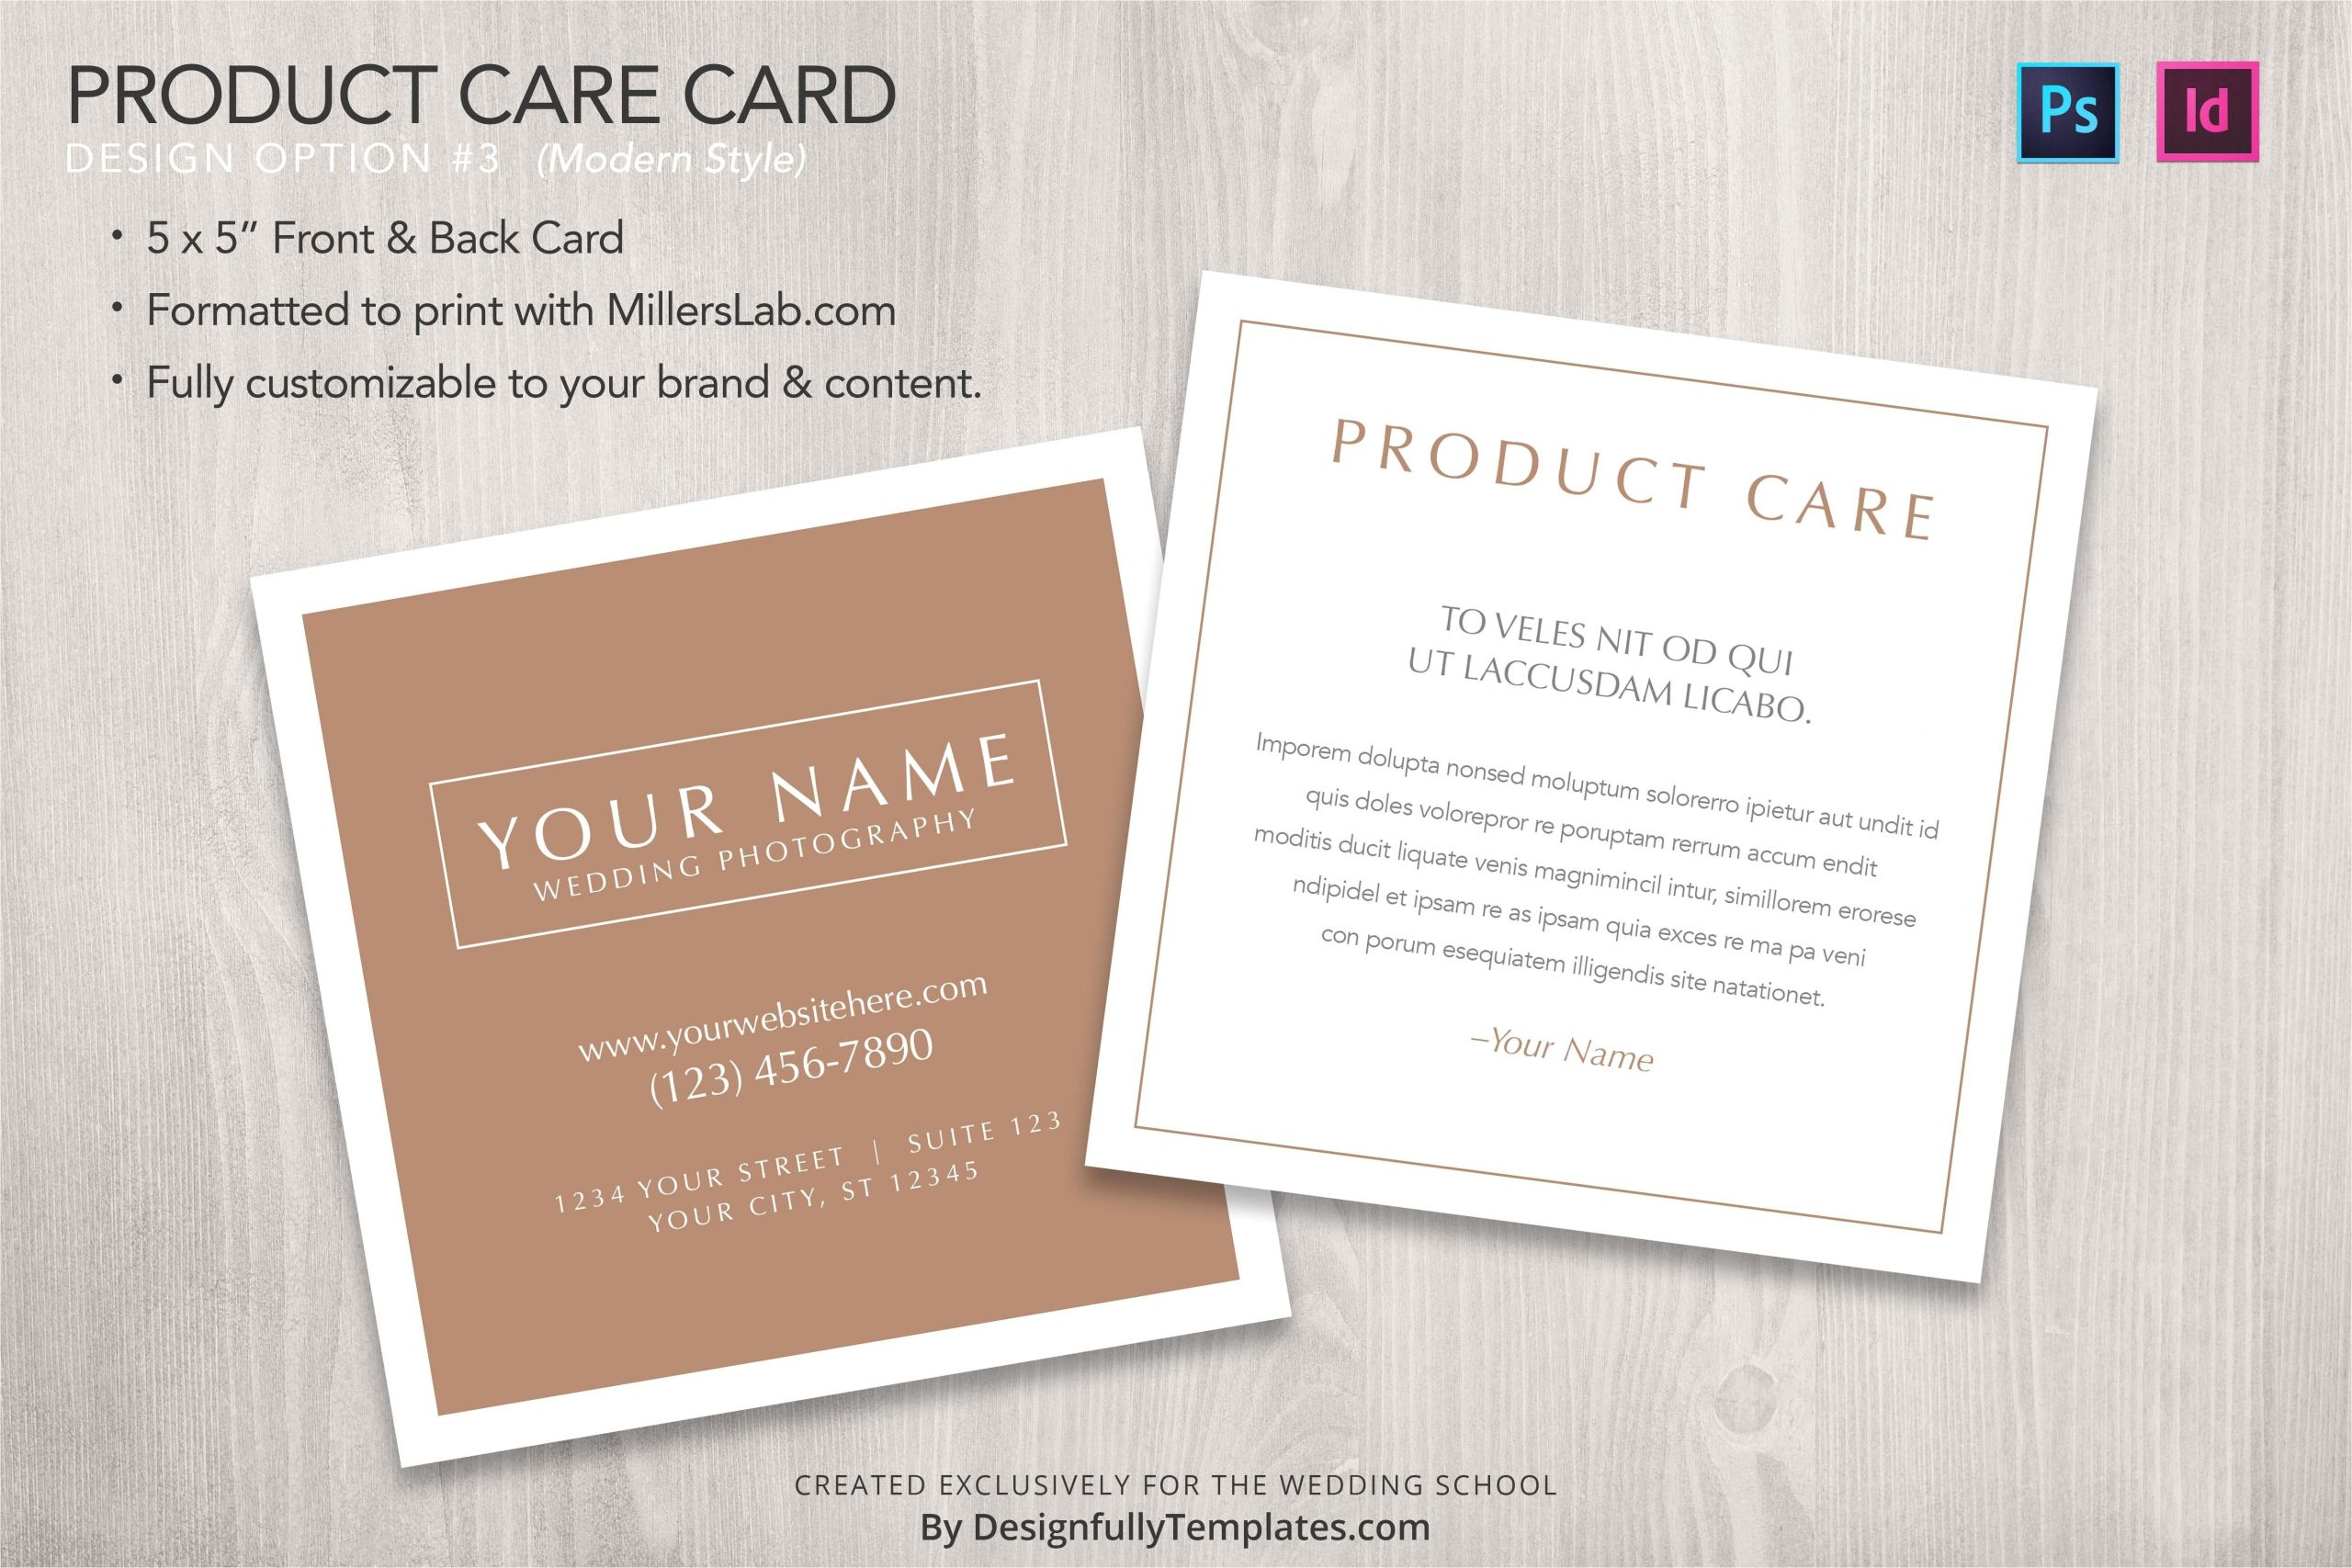 Marriage Content In Invitation Card Download Valid Business Card Preview Template Can Save at